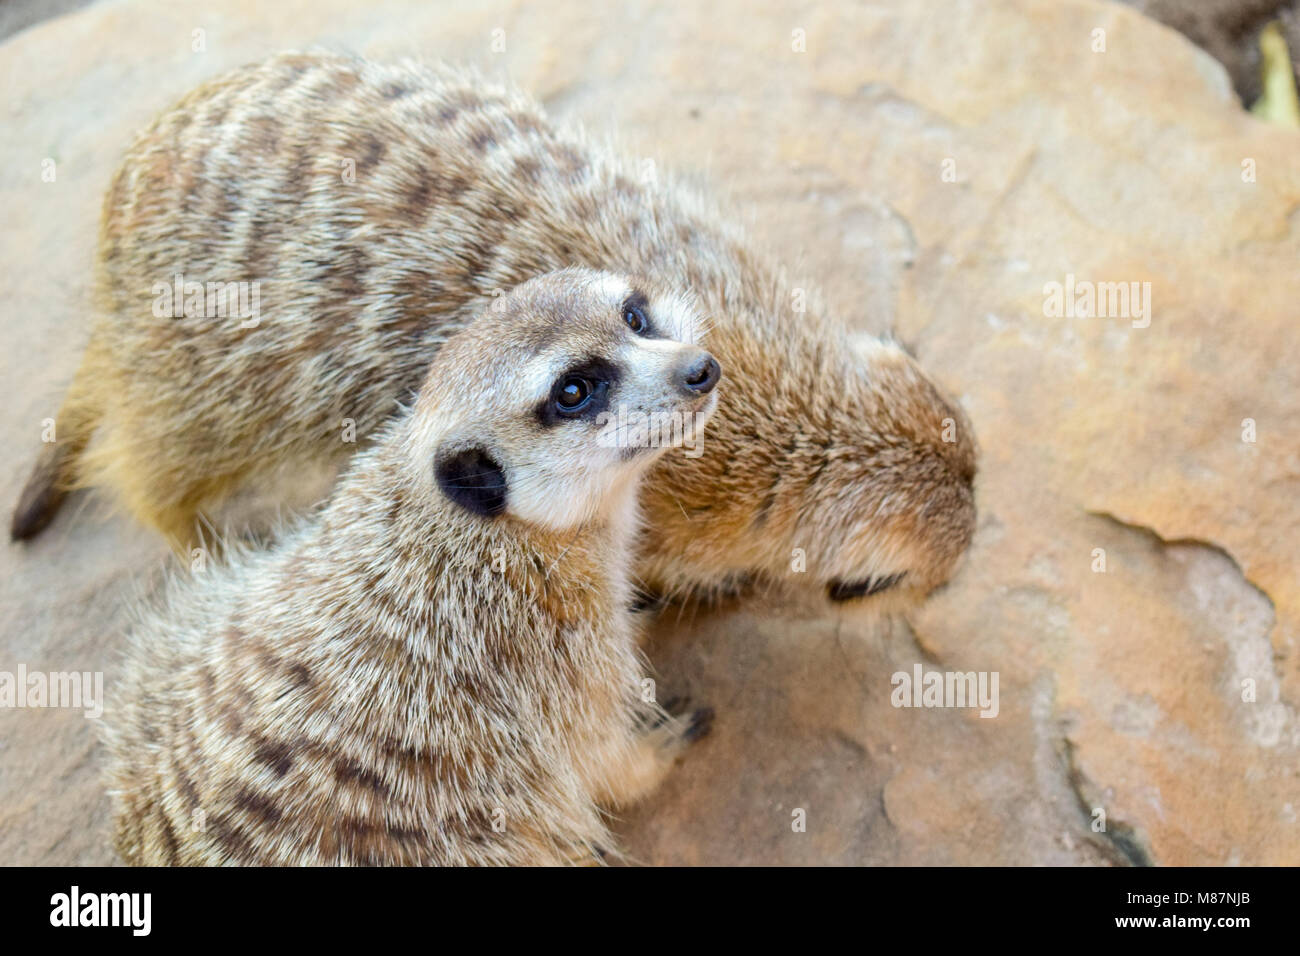 two meerkat sitting on a rock - Stock Image